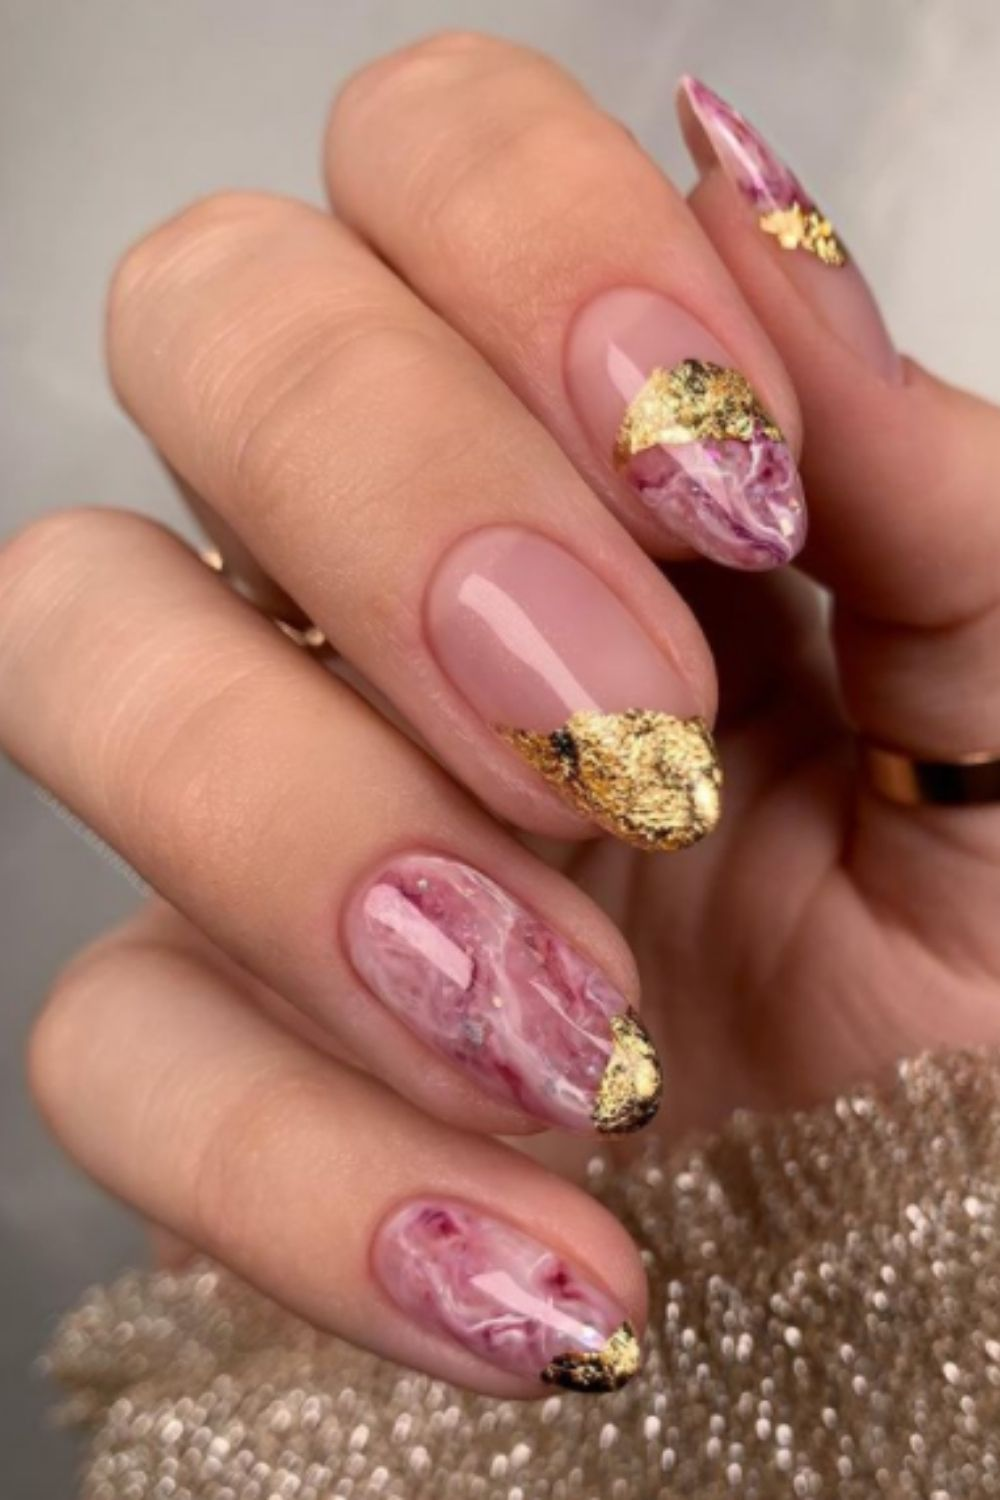 What are homecoming nail designs?